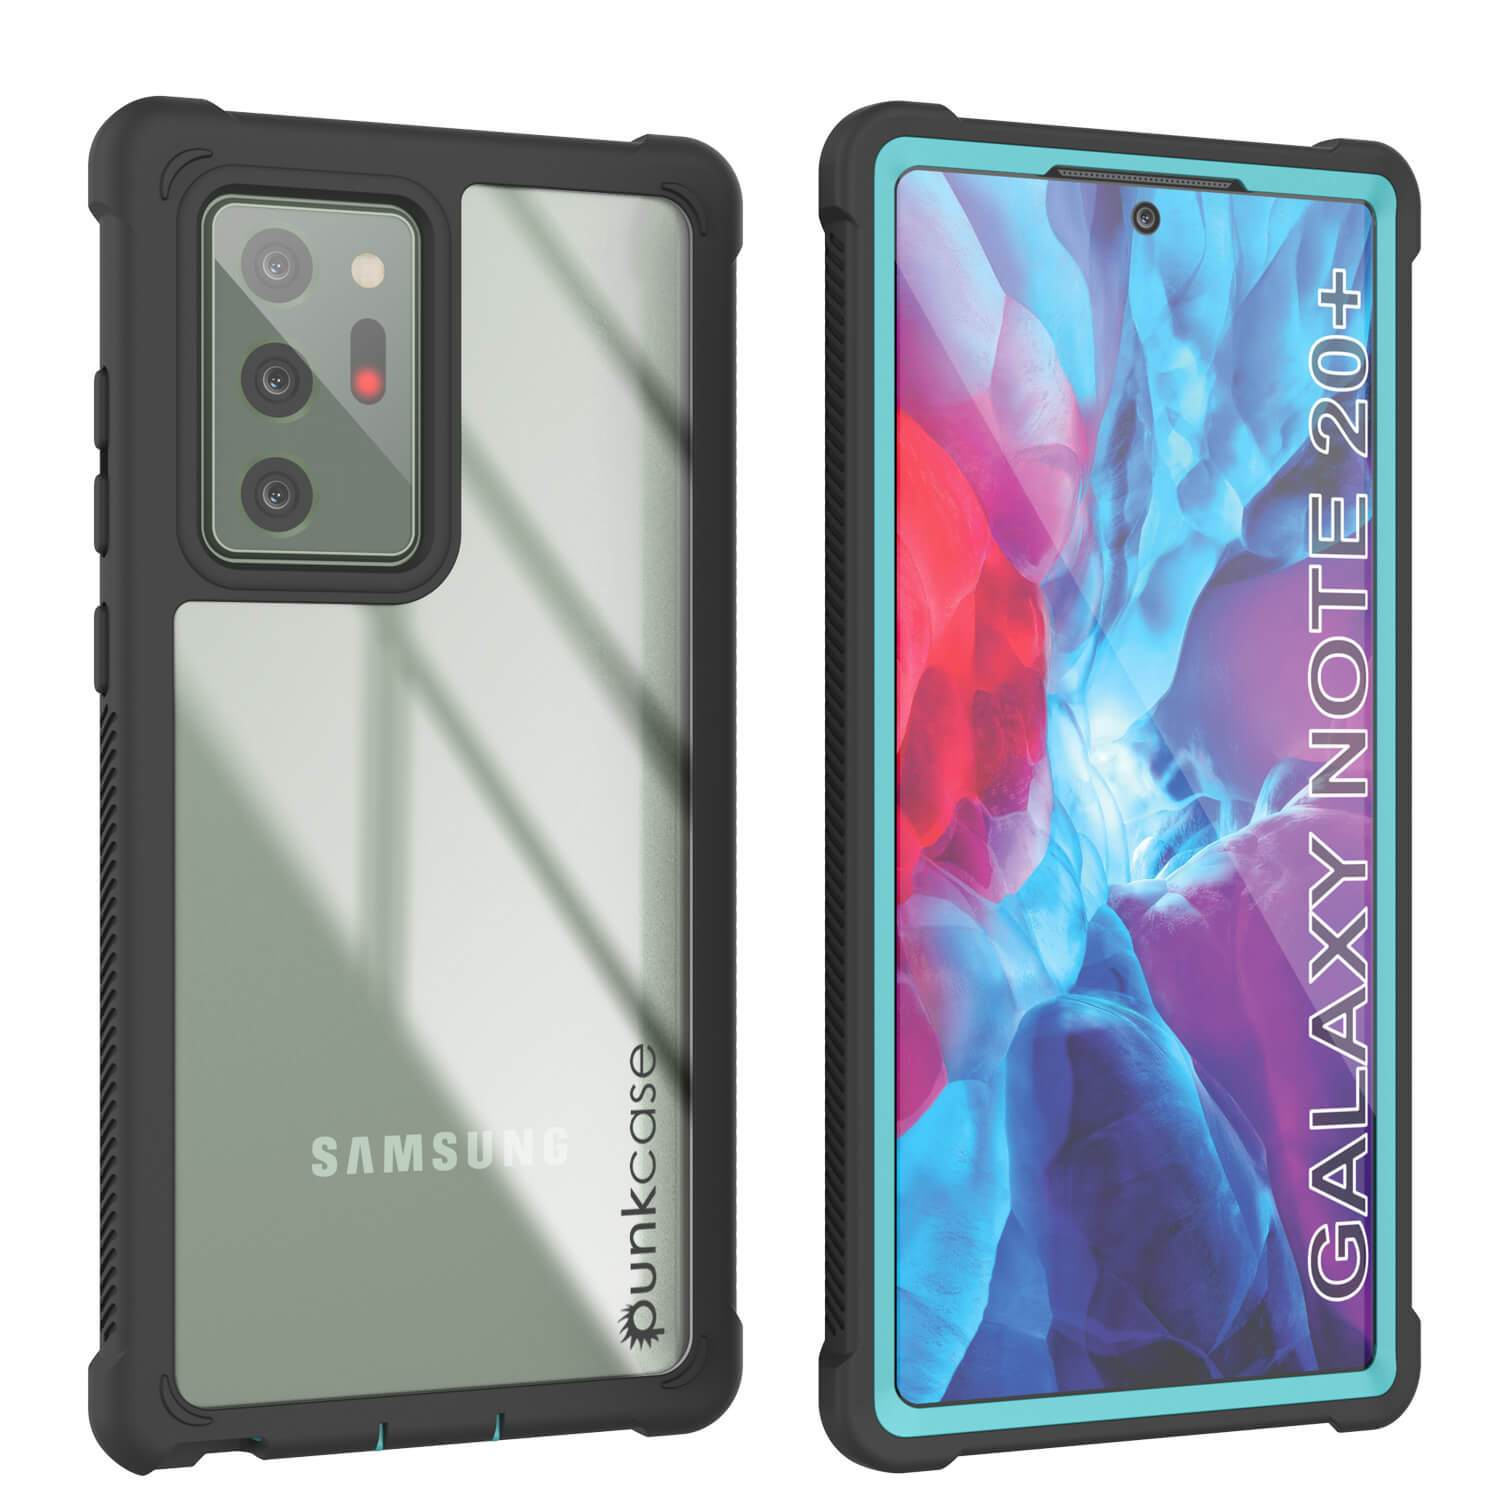 Punkcase Galaxy Note 20 Ultra Case, [Spartan Series] Teal Rugged Heavy Duty Cover W/Built in Screen Protector